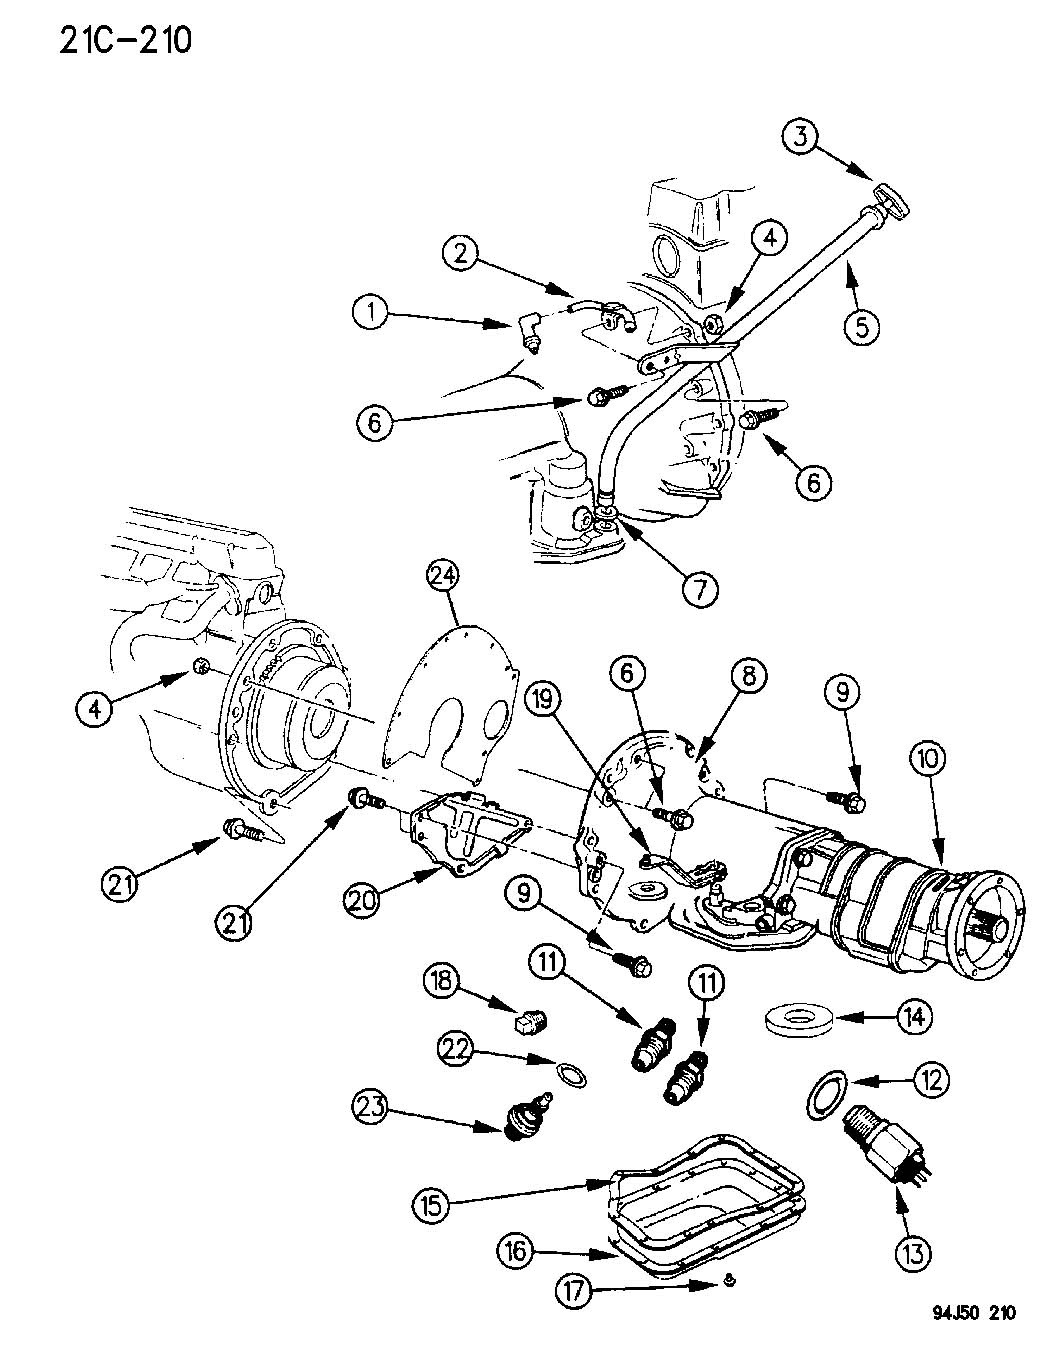 Jeep Liberty Tail Light Wiring Diagram Yj Tail Light Wiring Diagram